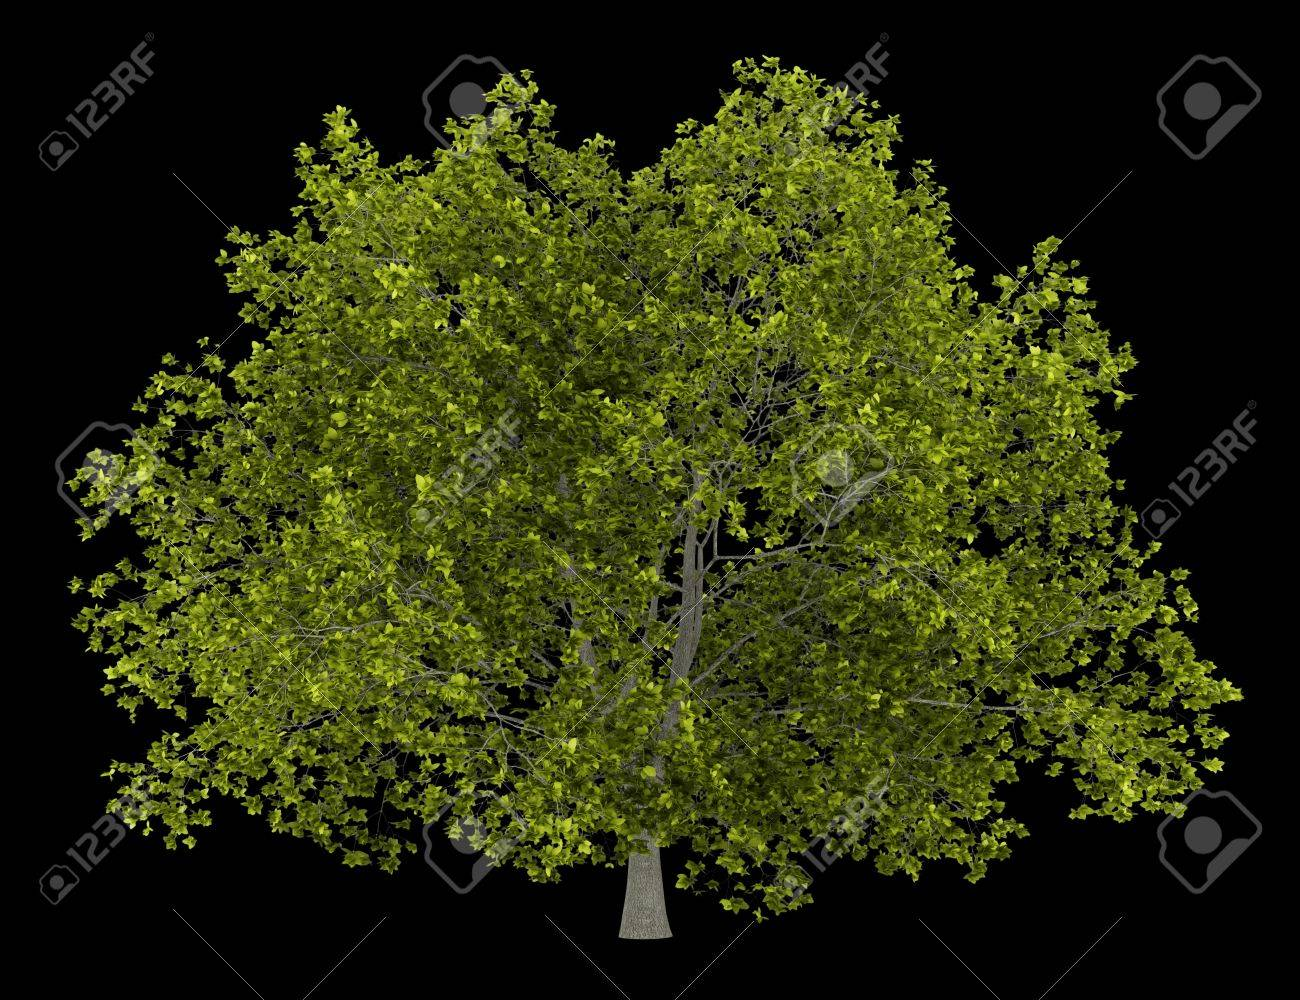 american beech tree isolated on black background Stock Photo - 19719168